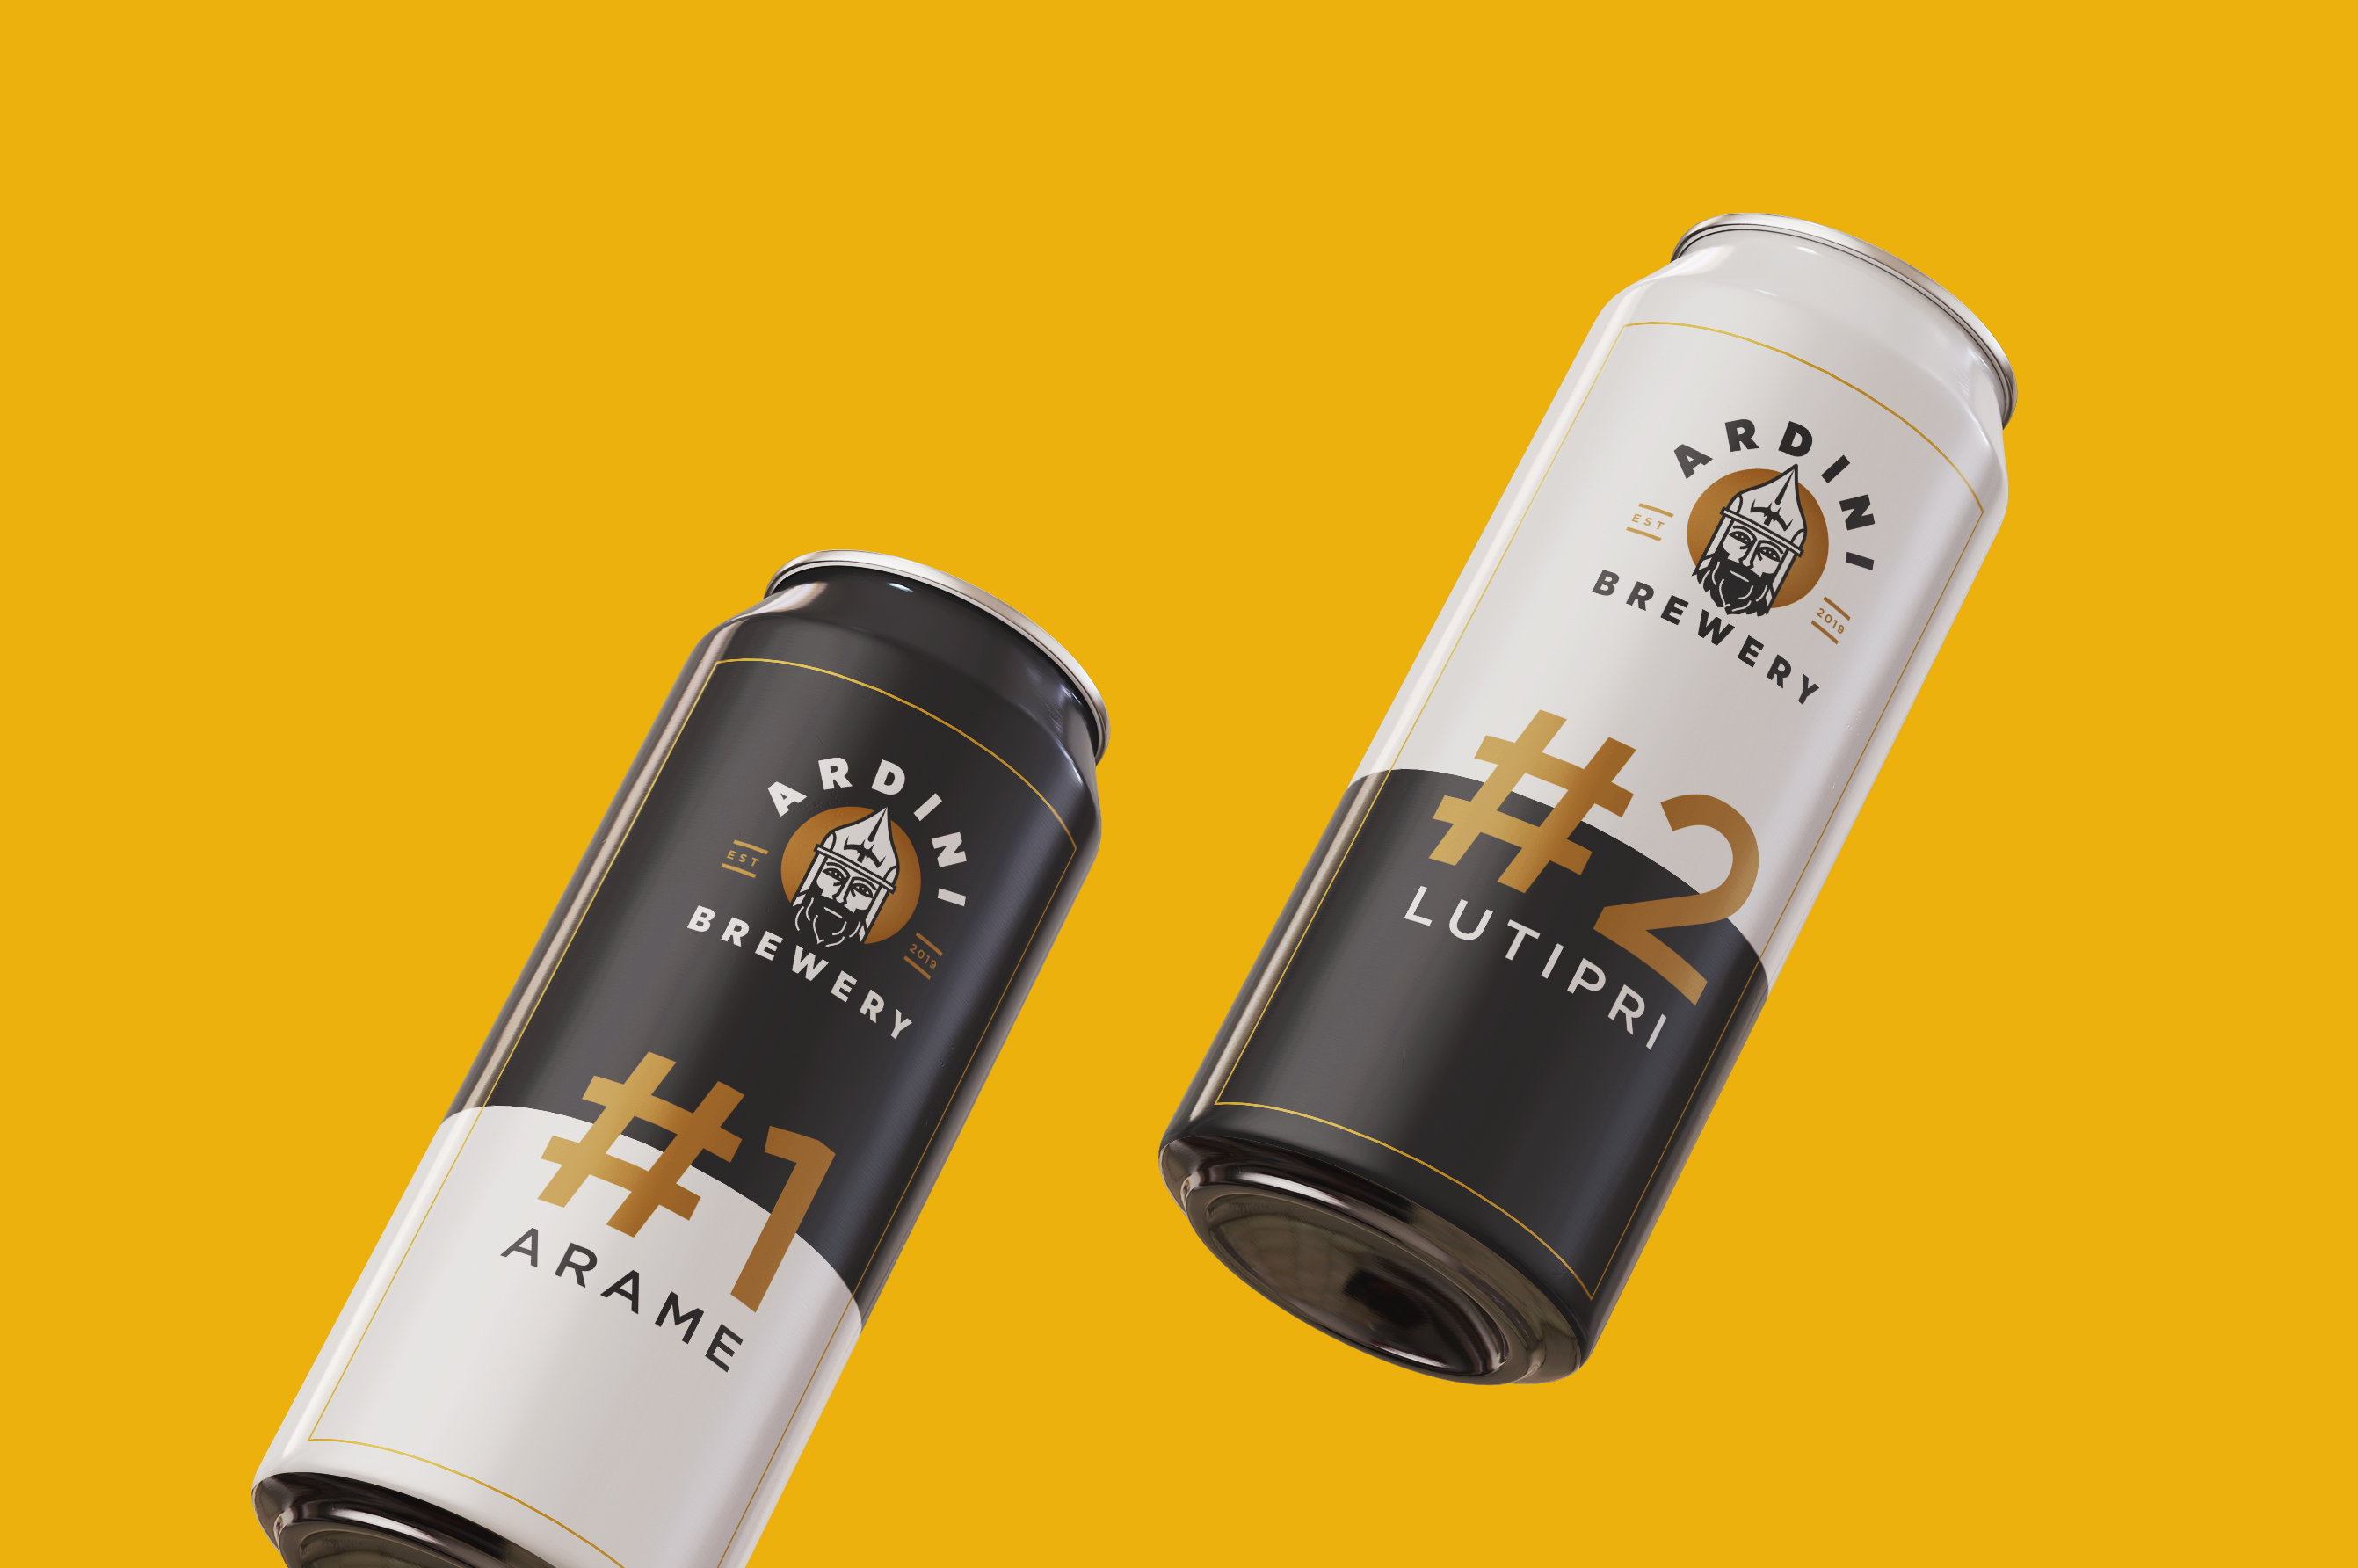 Branding and Package Design for Ardini Brewery